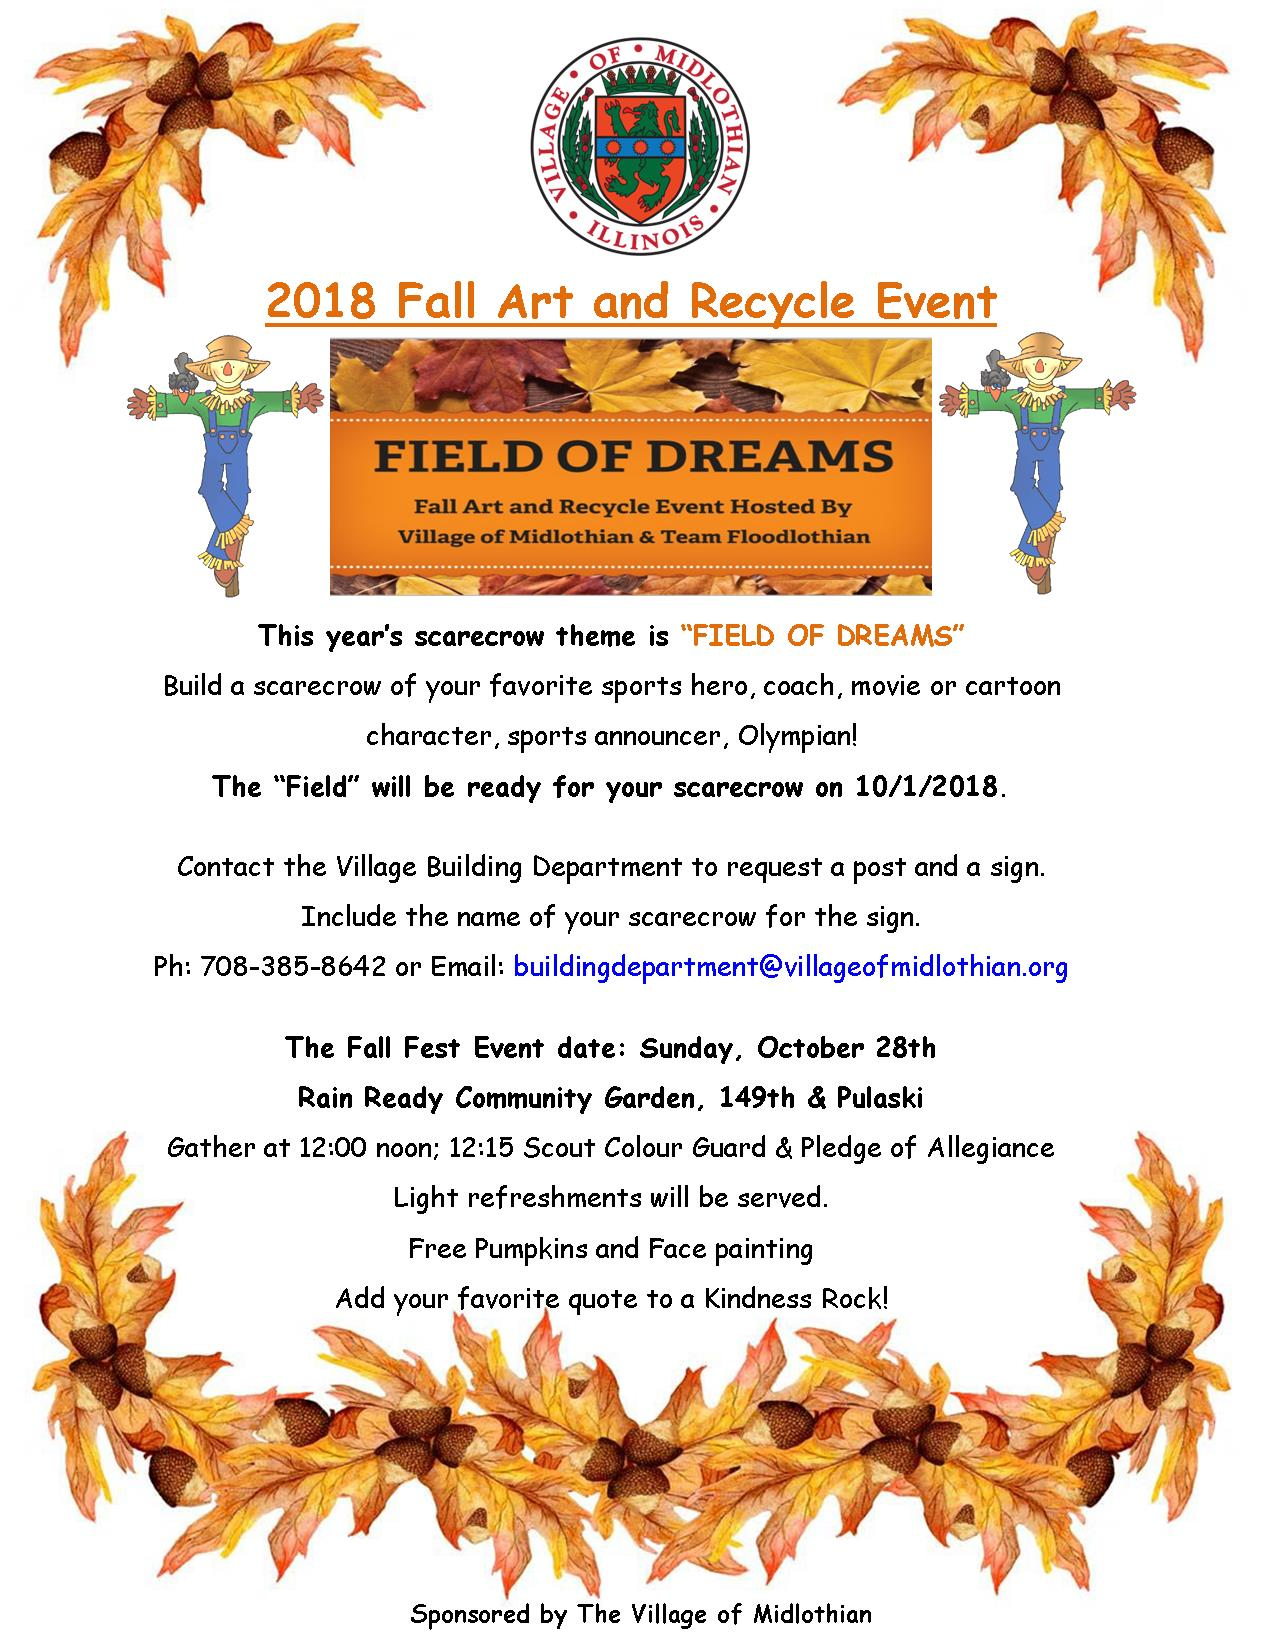 Fall Art and Event